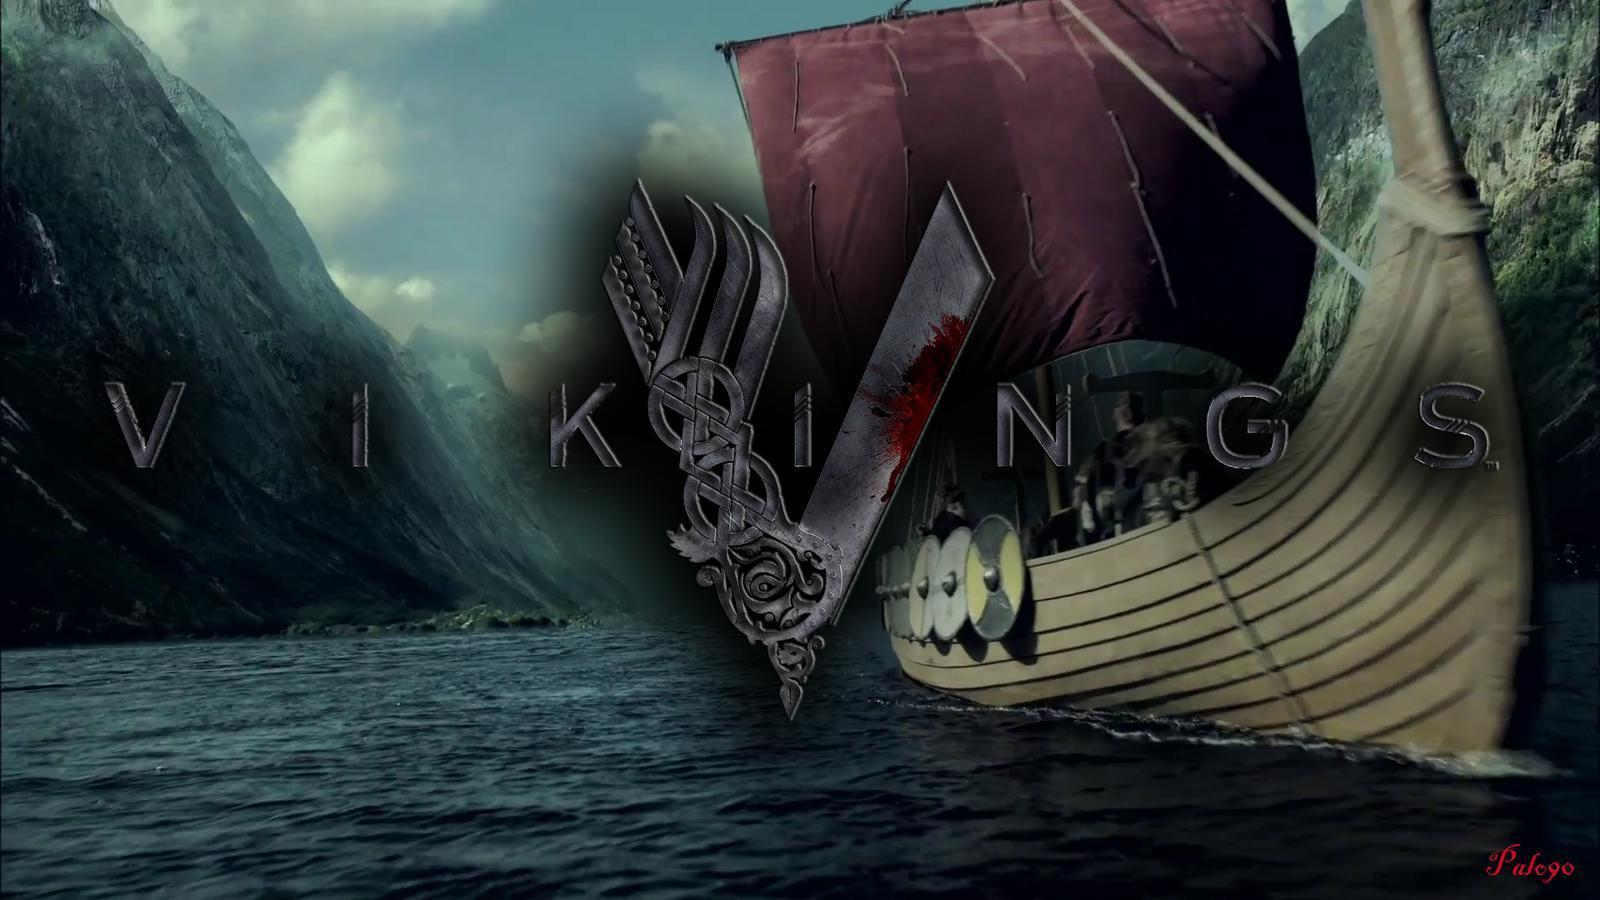 screaming viking hd desktop-#7